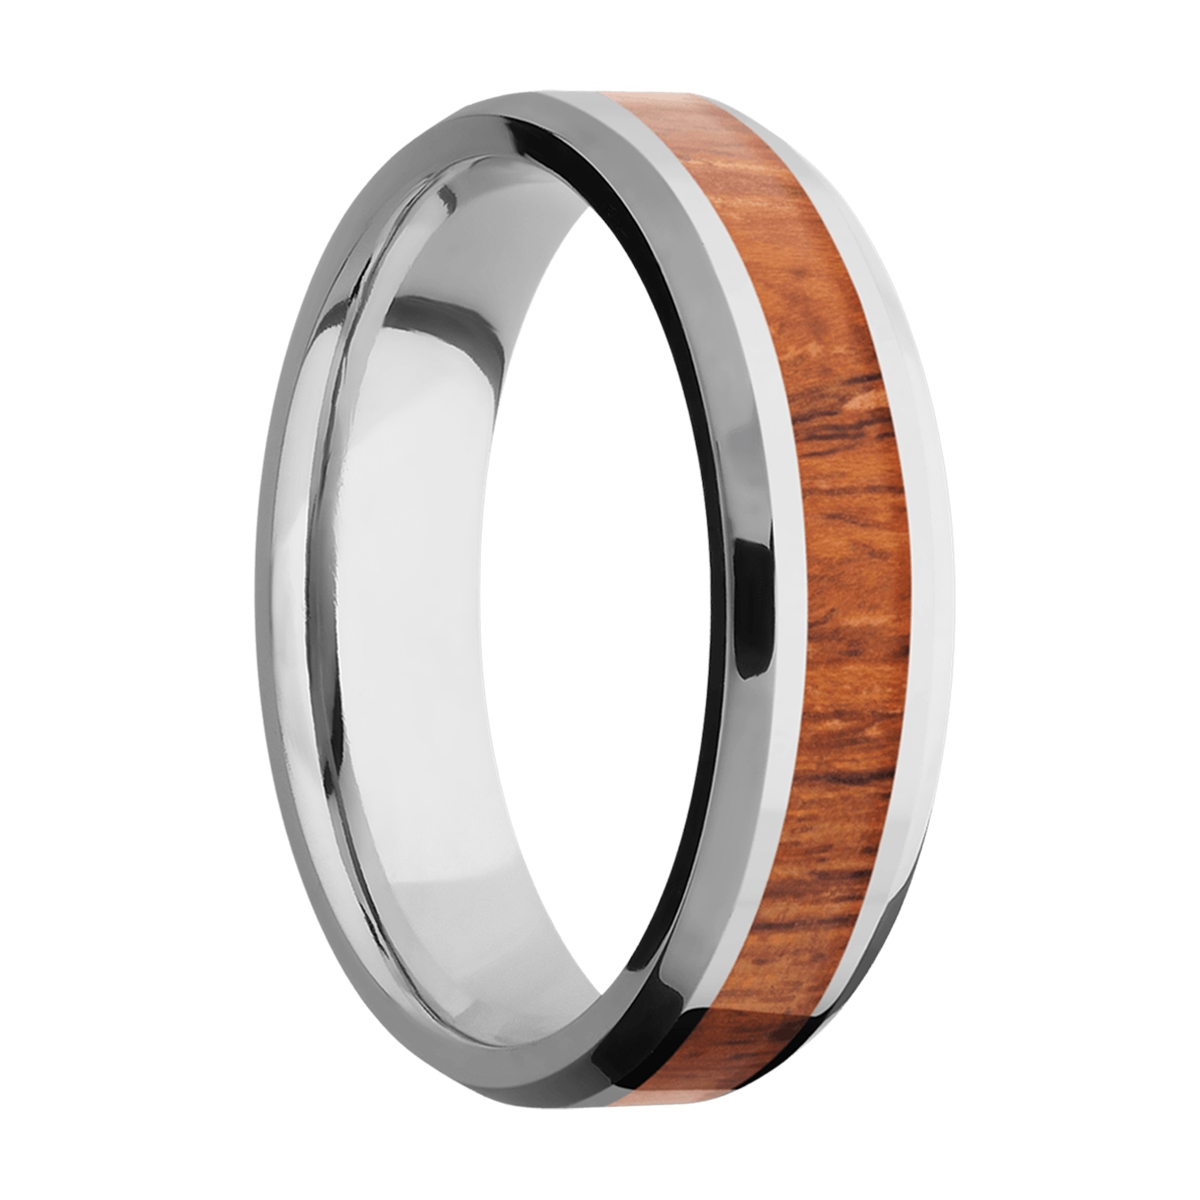 Lashbrook CC6B13(NS)/HARDWOOD Cobalt Chrome Wedding Ring or Band Alternative View 1